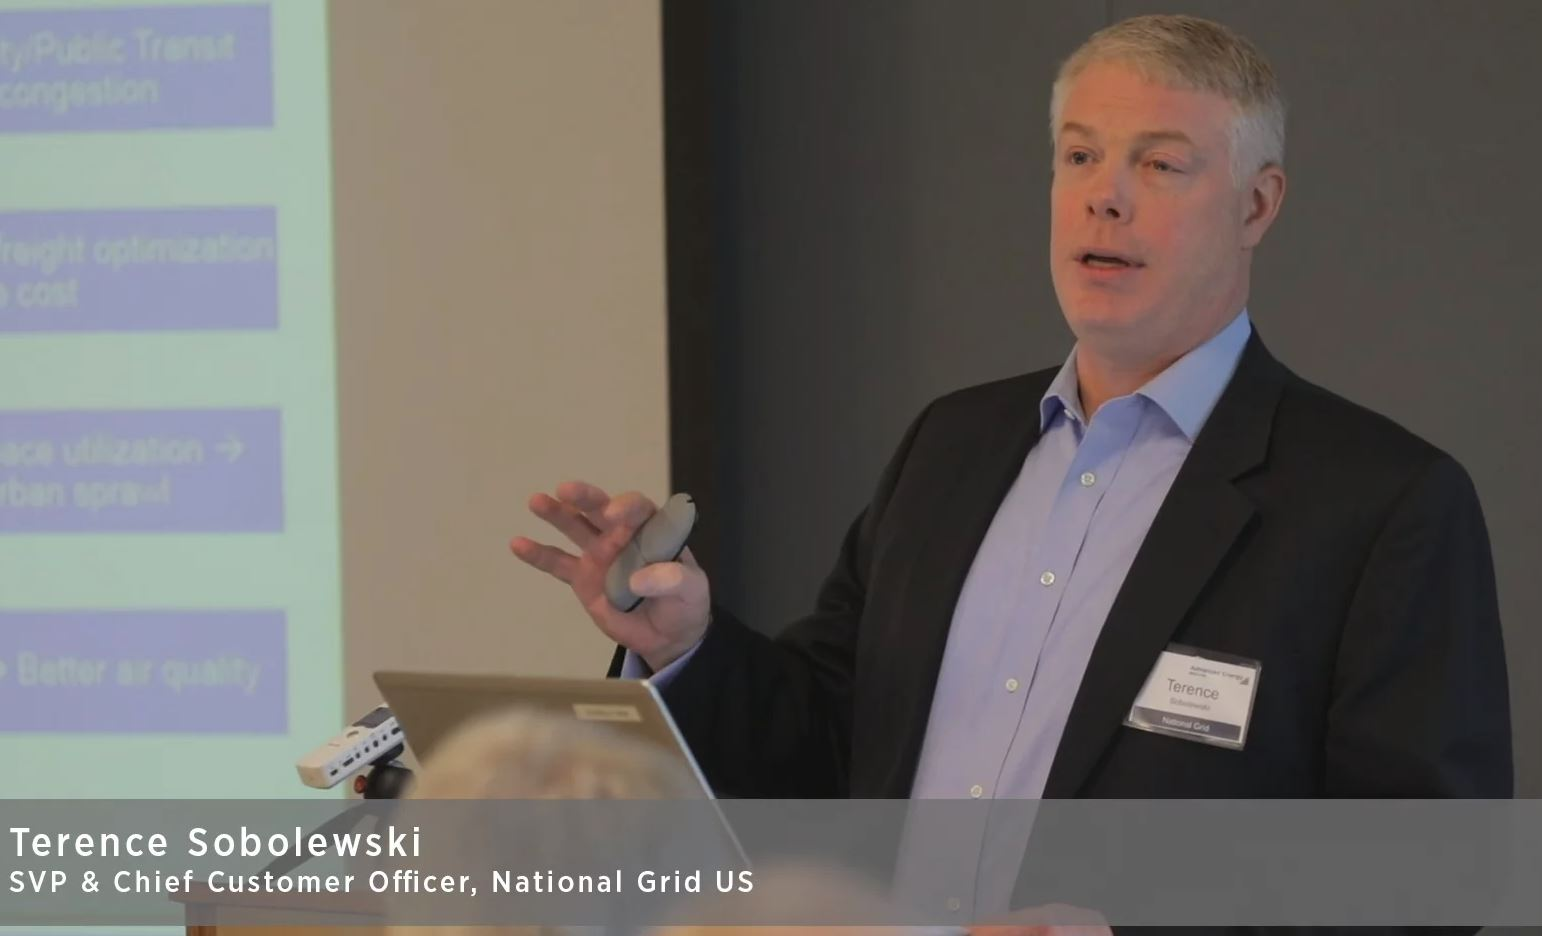 Terry Sobolewski, Chief Customer Officer of National Grid US, speaking at the  Boston Advanced Energy Q4 Stakeholder Breakfast